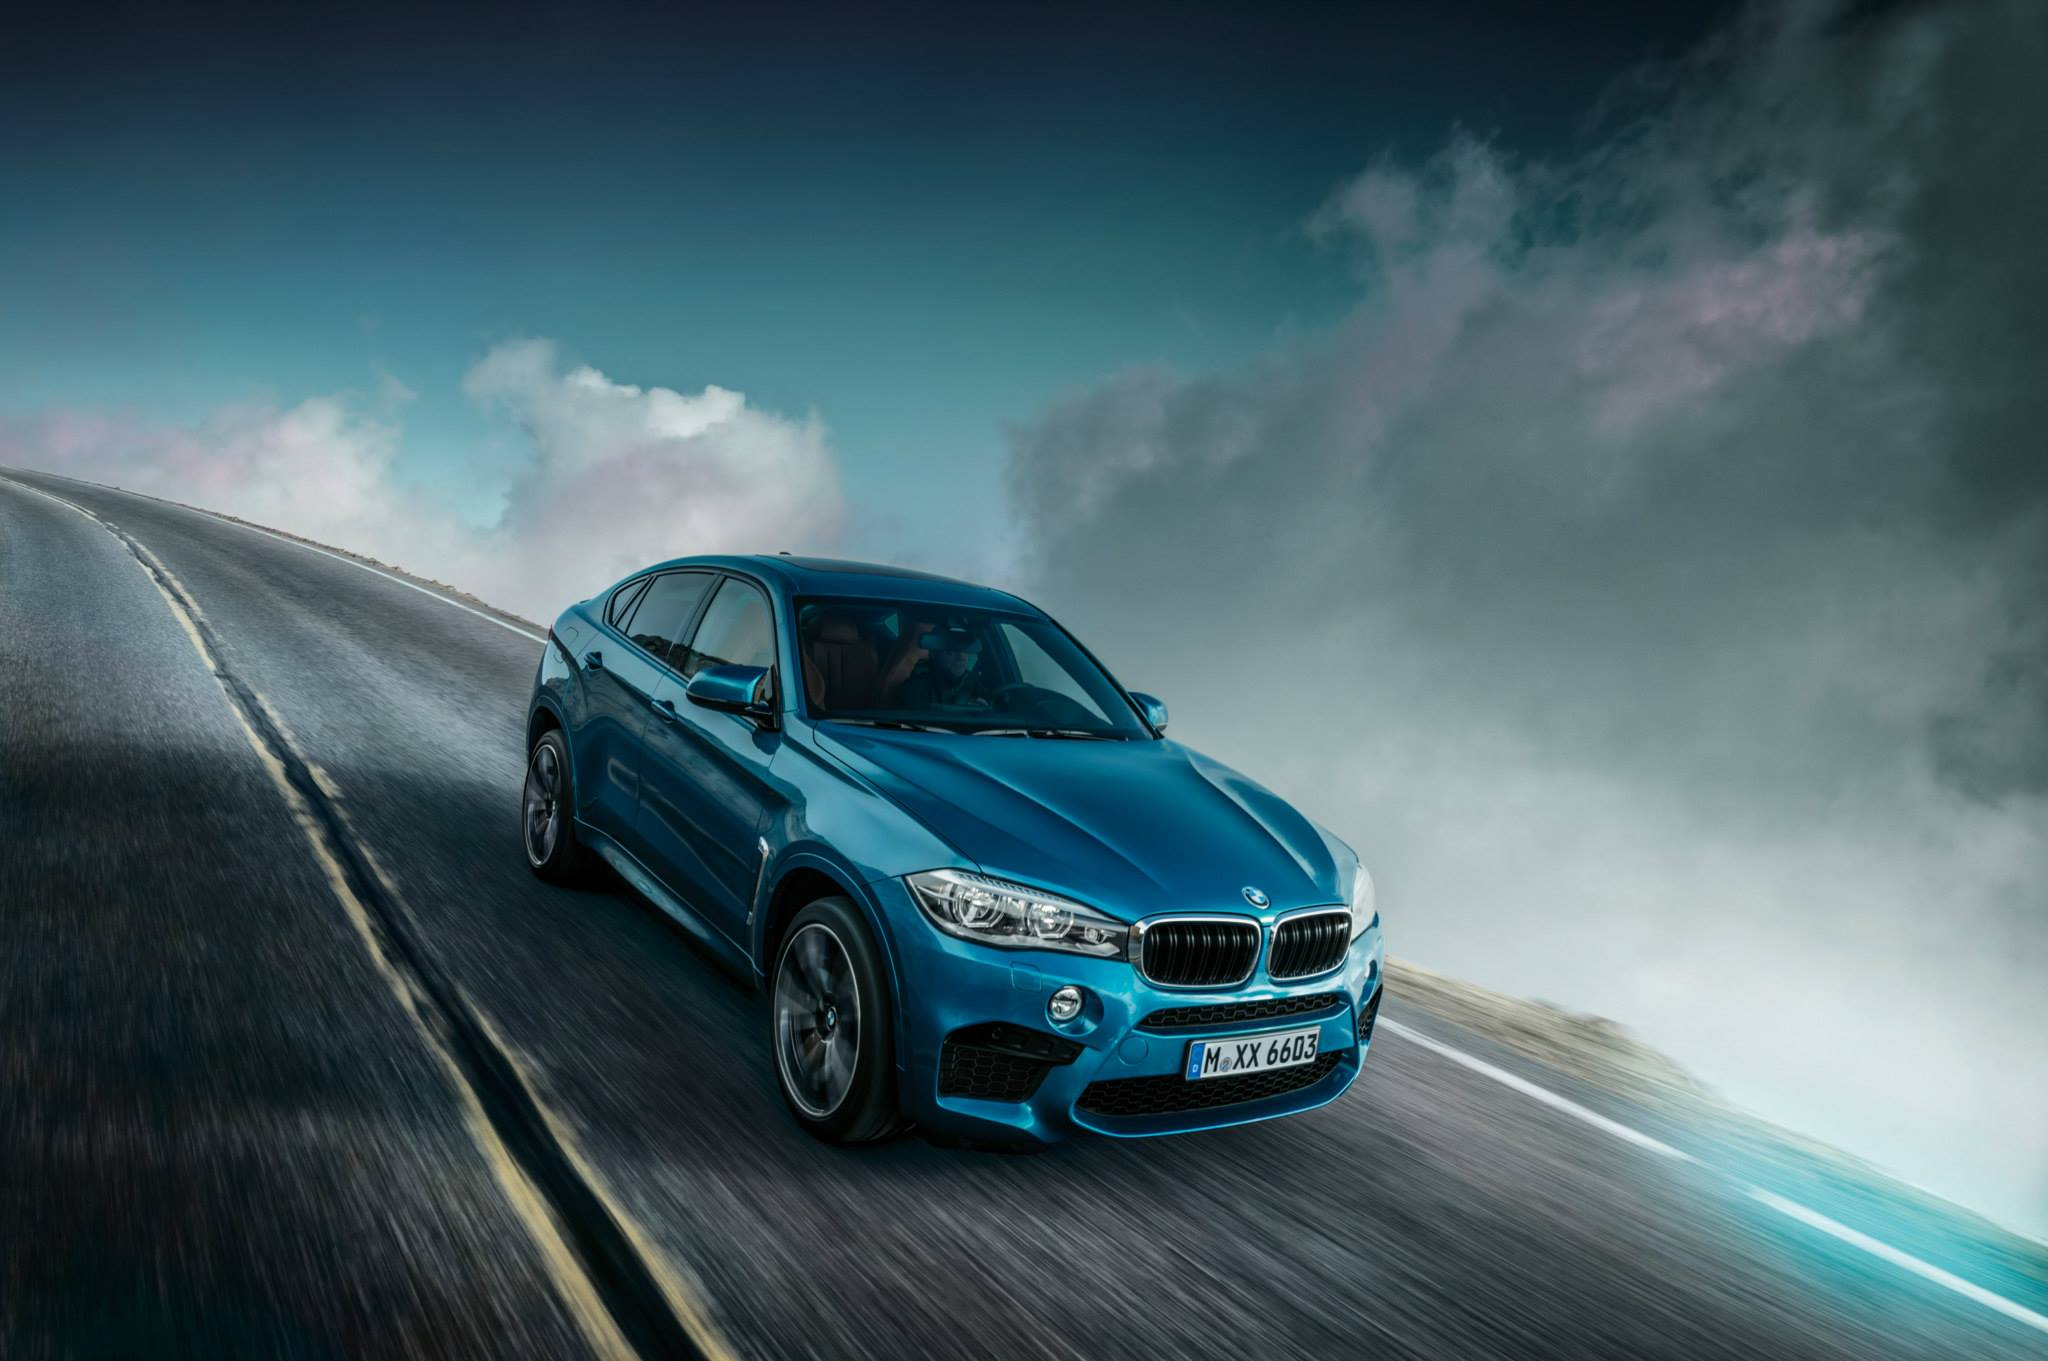 2015 bmw x5 m and x6 m wallpapers